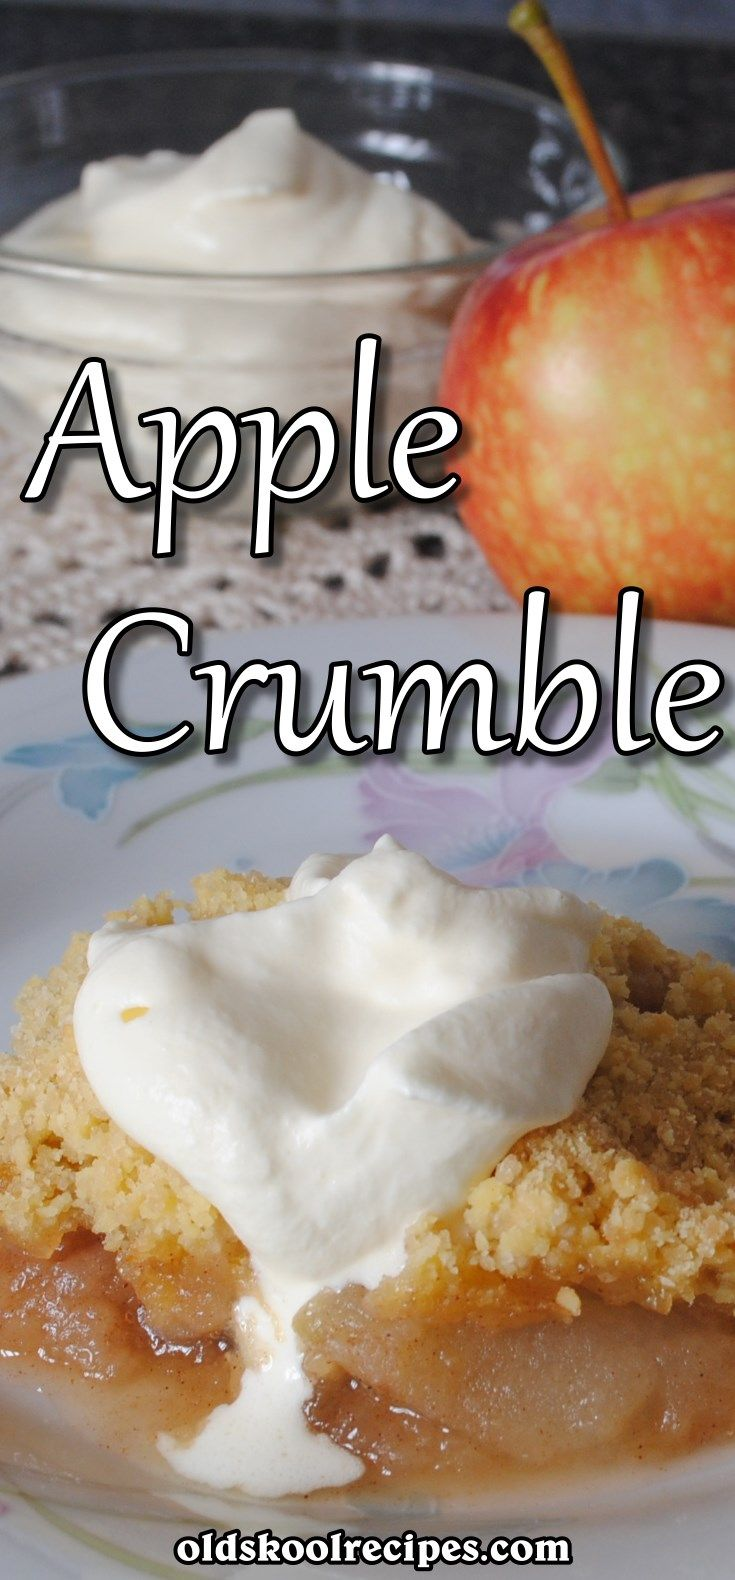 Apple Crumble Pudding Recipe | Old Skool Recipes. Easy Apple Crumble Pudding recipe is absolutely flop-proof! A juicy and yummy apple pie filling is covered with a crispy cookie-like topping, this crumble will become your favourite dessert!